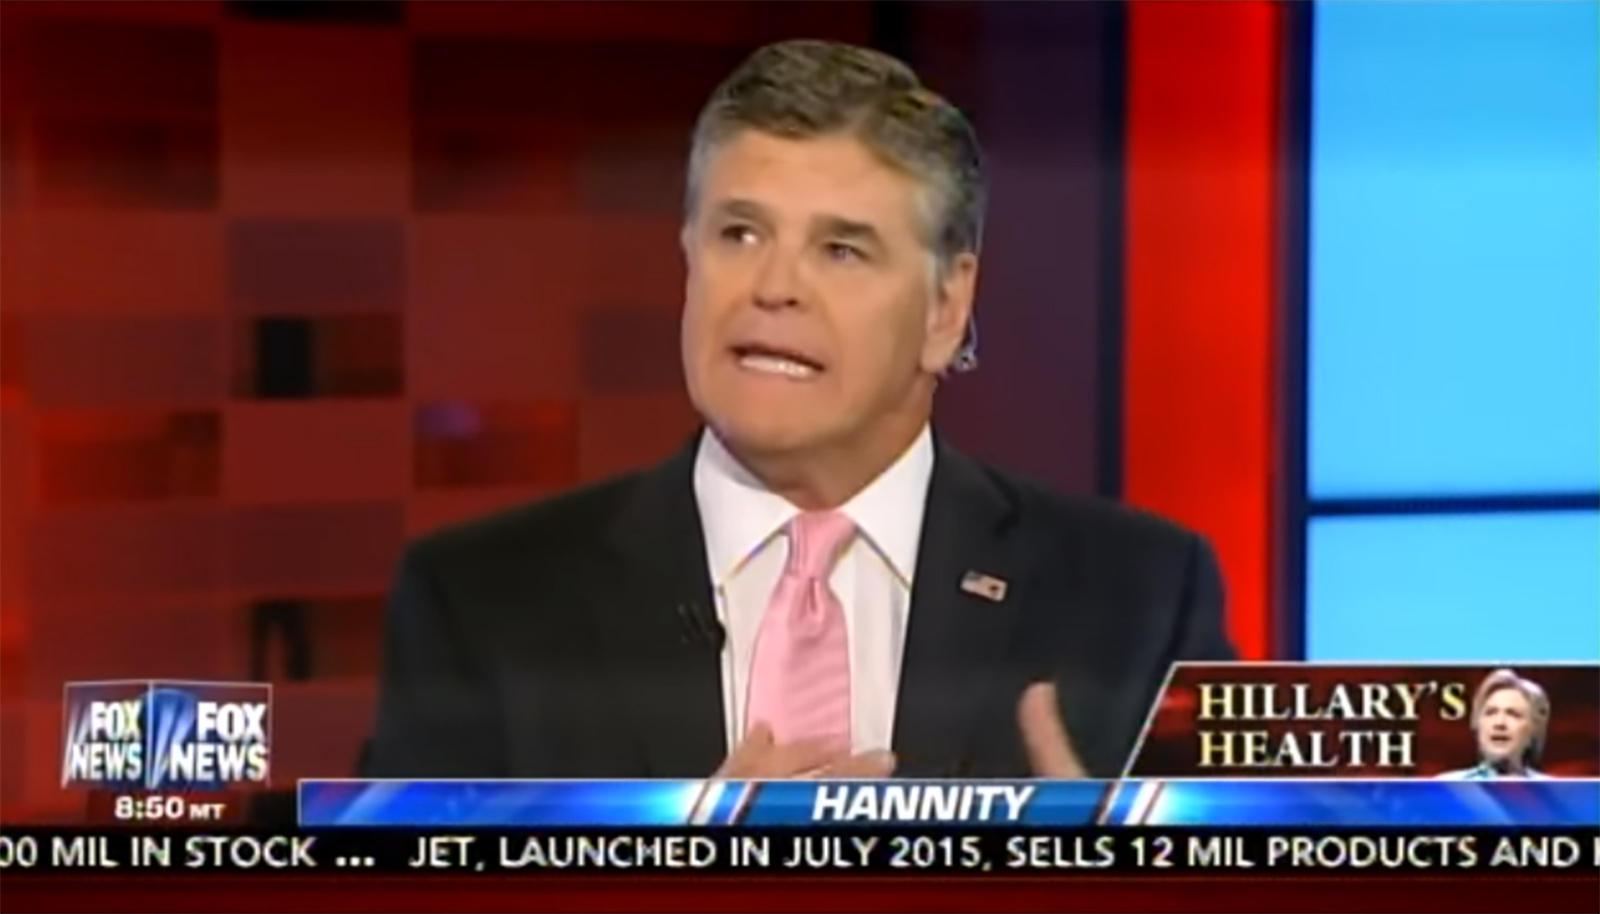 Hannity dating service